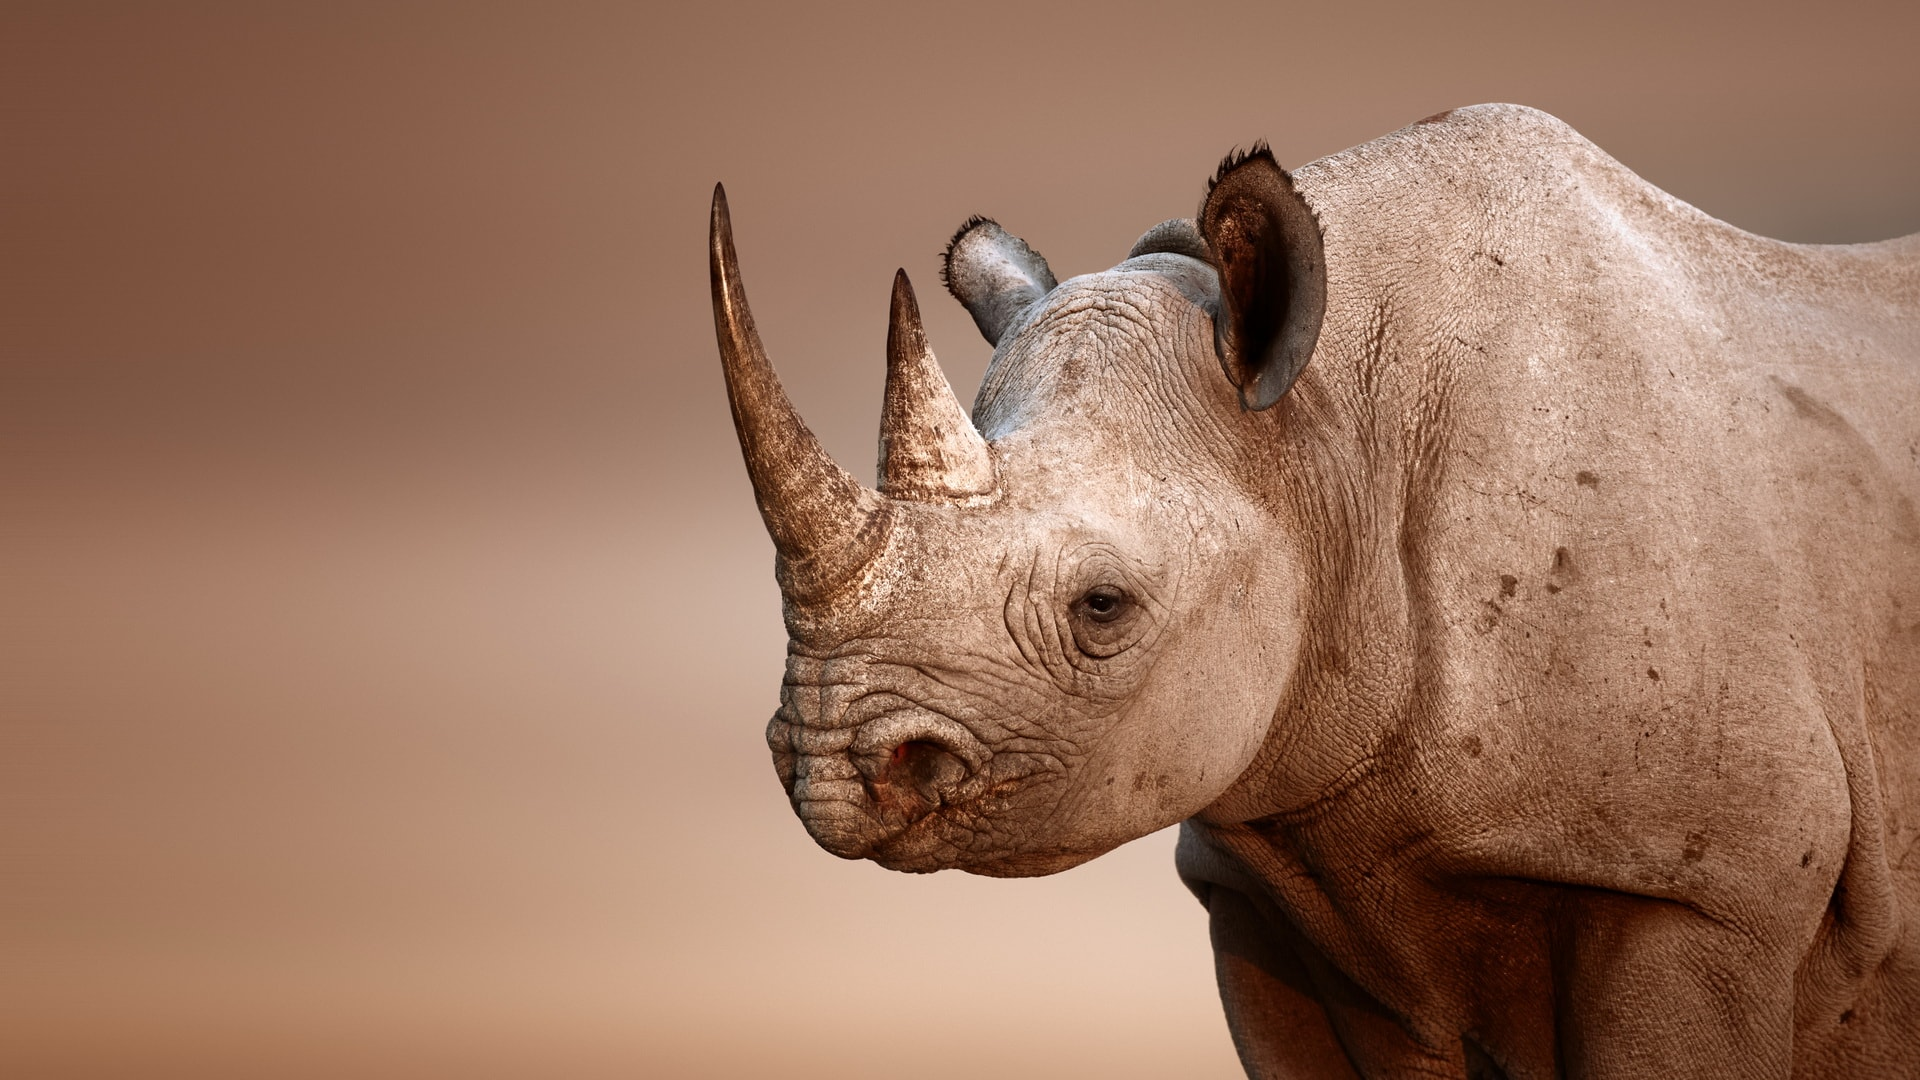 Rhinoceros HD